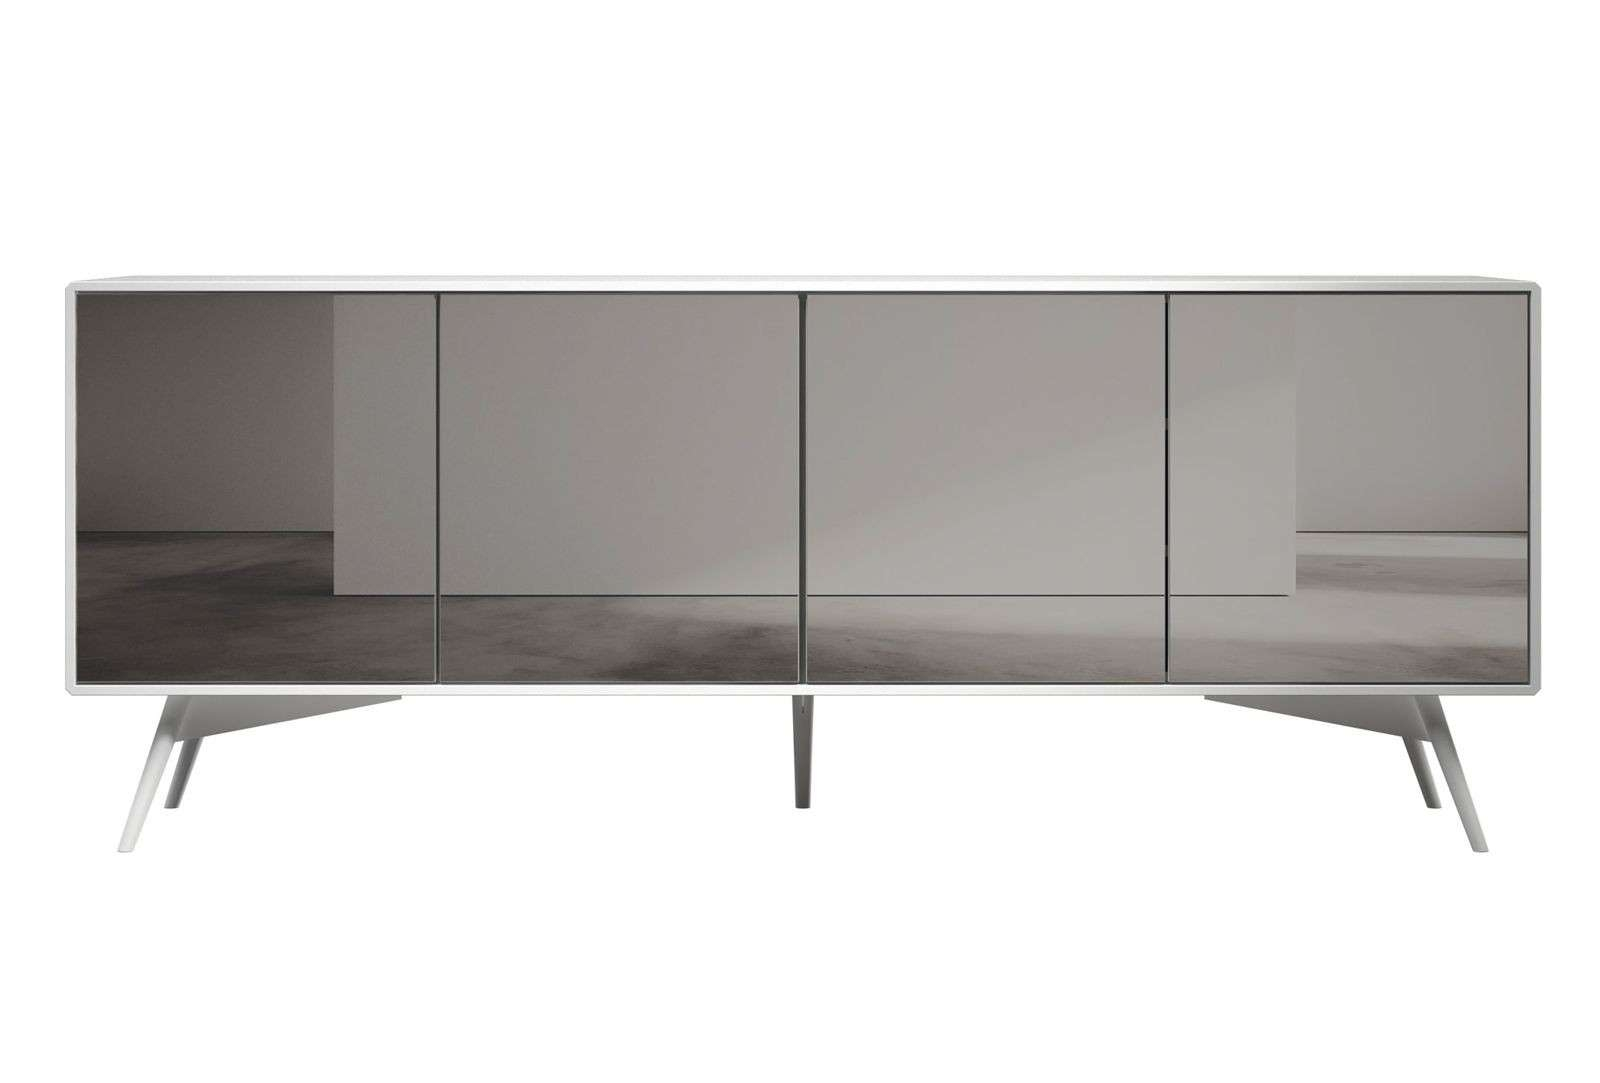 Christopher Sideboardmodloft | Modern Sideboards | Cressina With Regard To White Modern Sideboards (View 4 of 20)